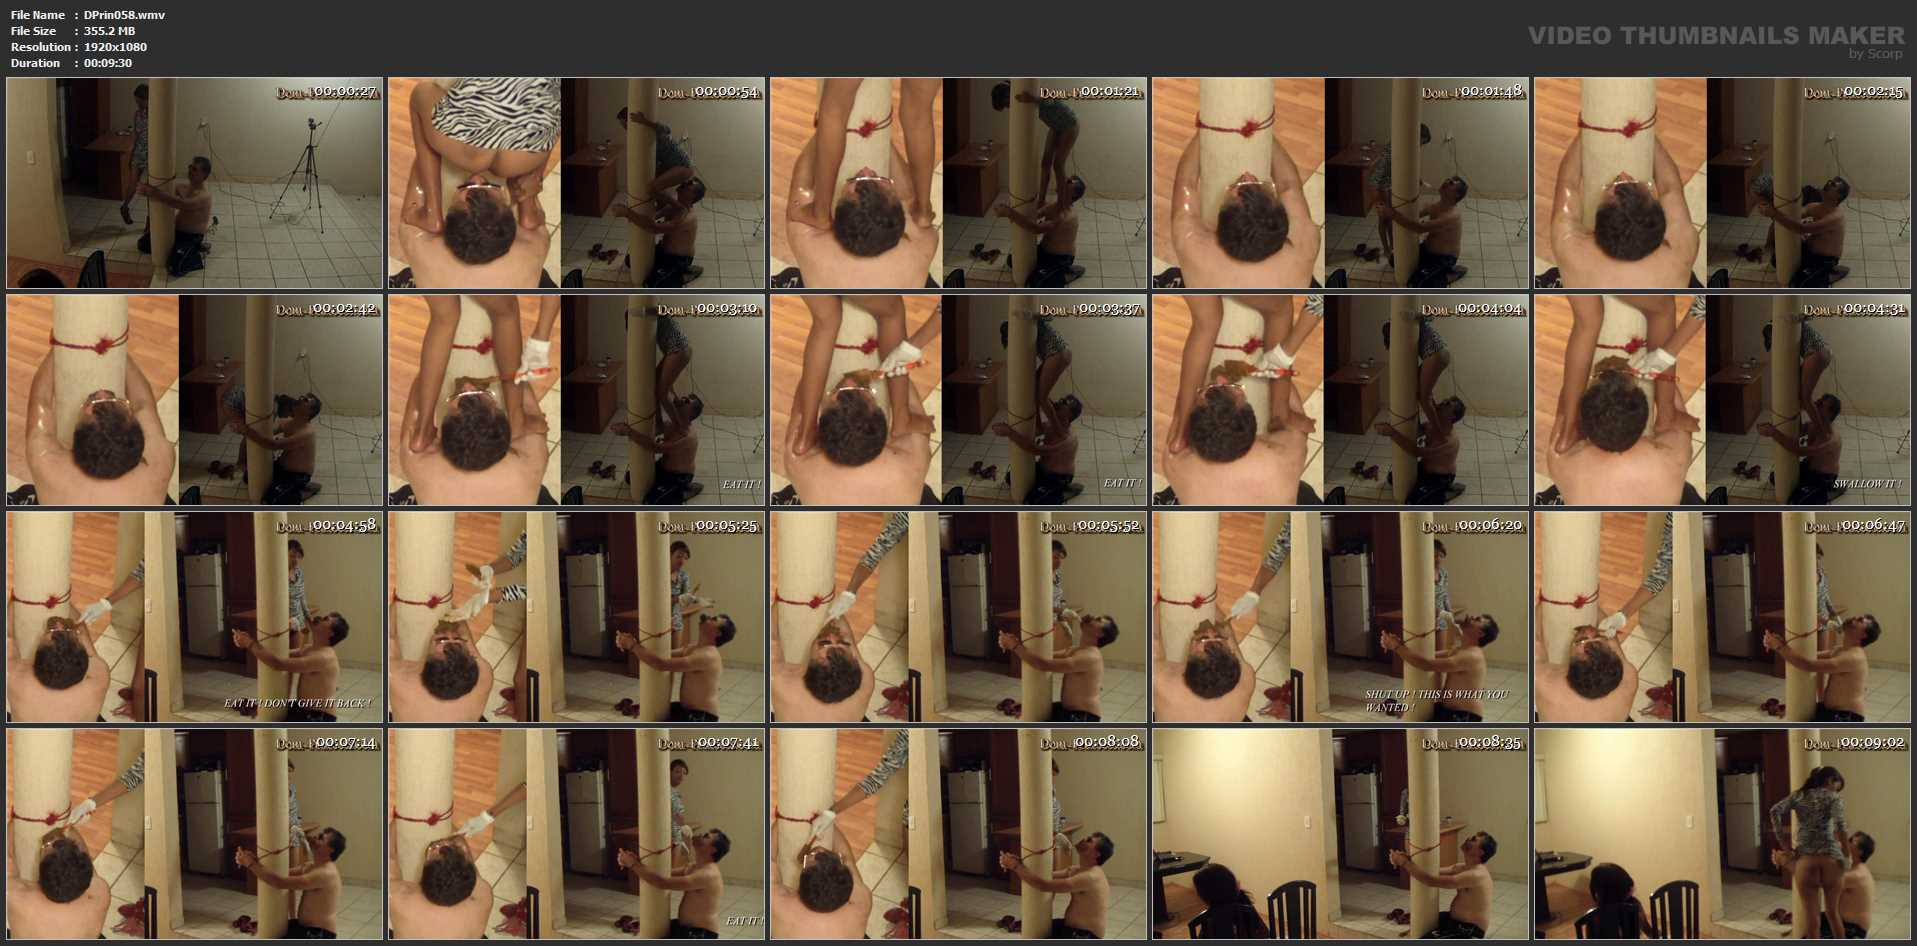 [DOM-PRINCESS] The Slave climing Poop Session Part 1 Britany [FULL HD][1080p][WMV]